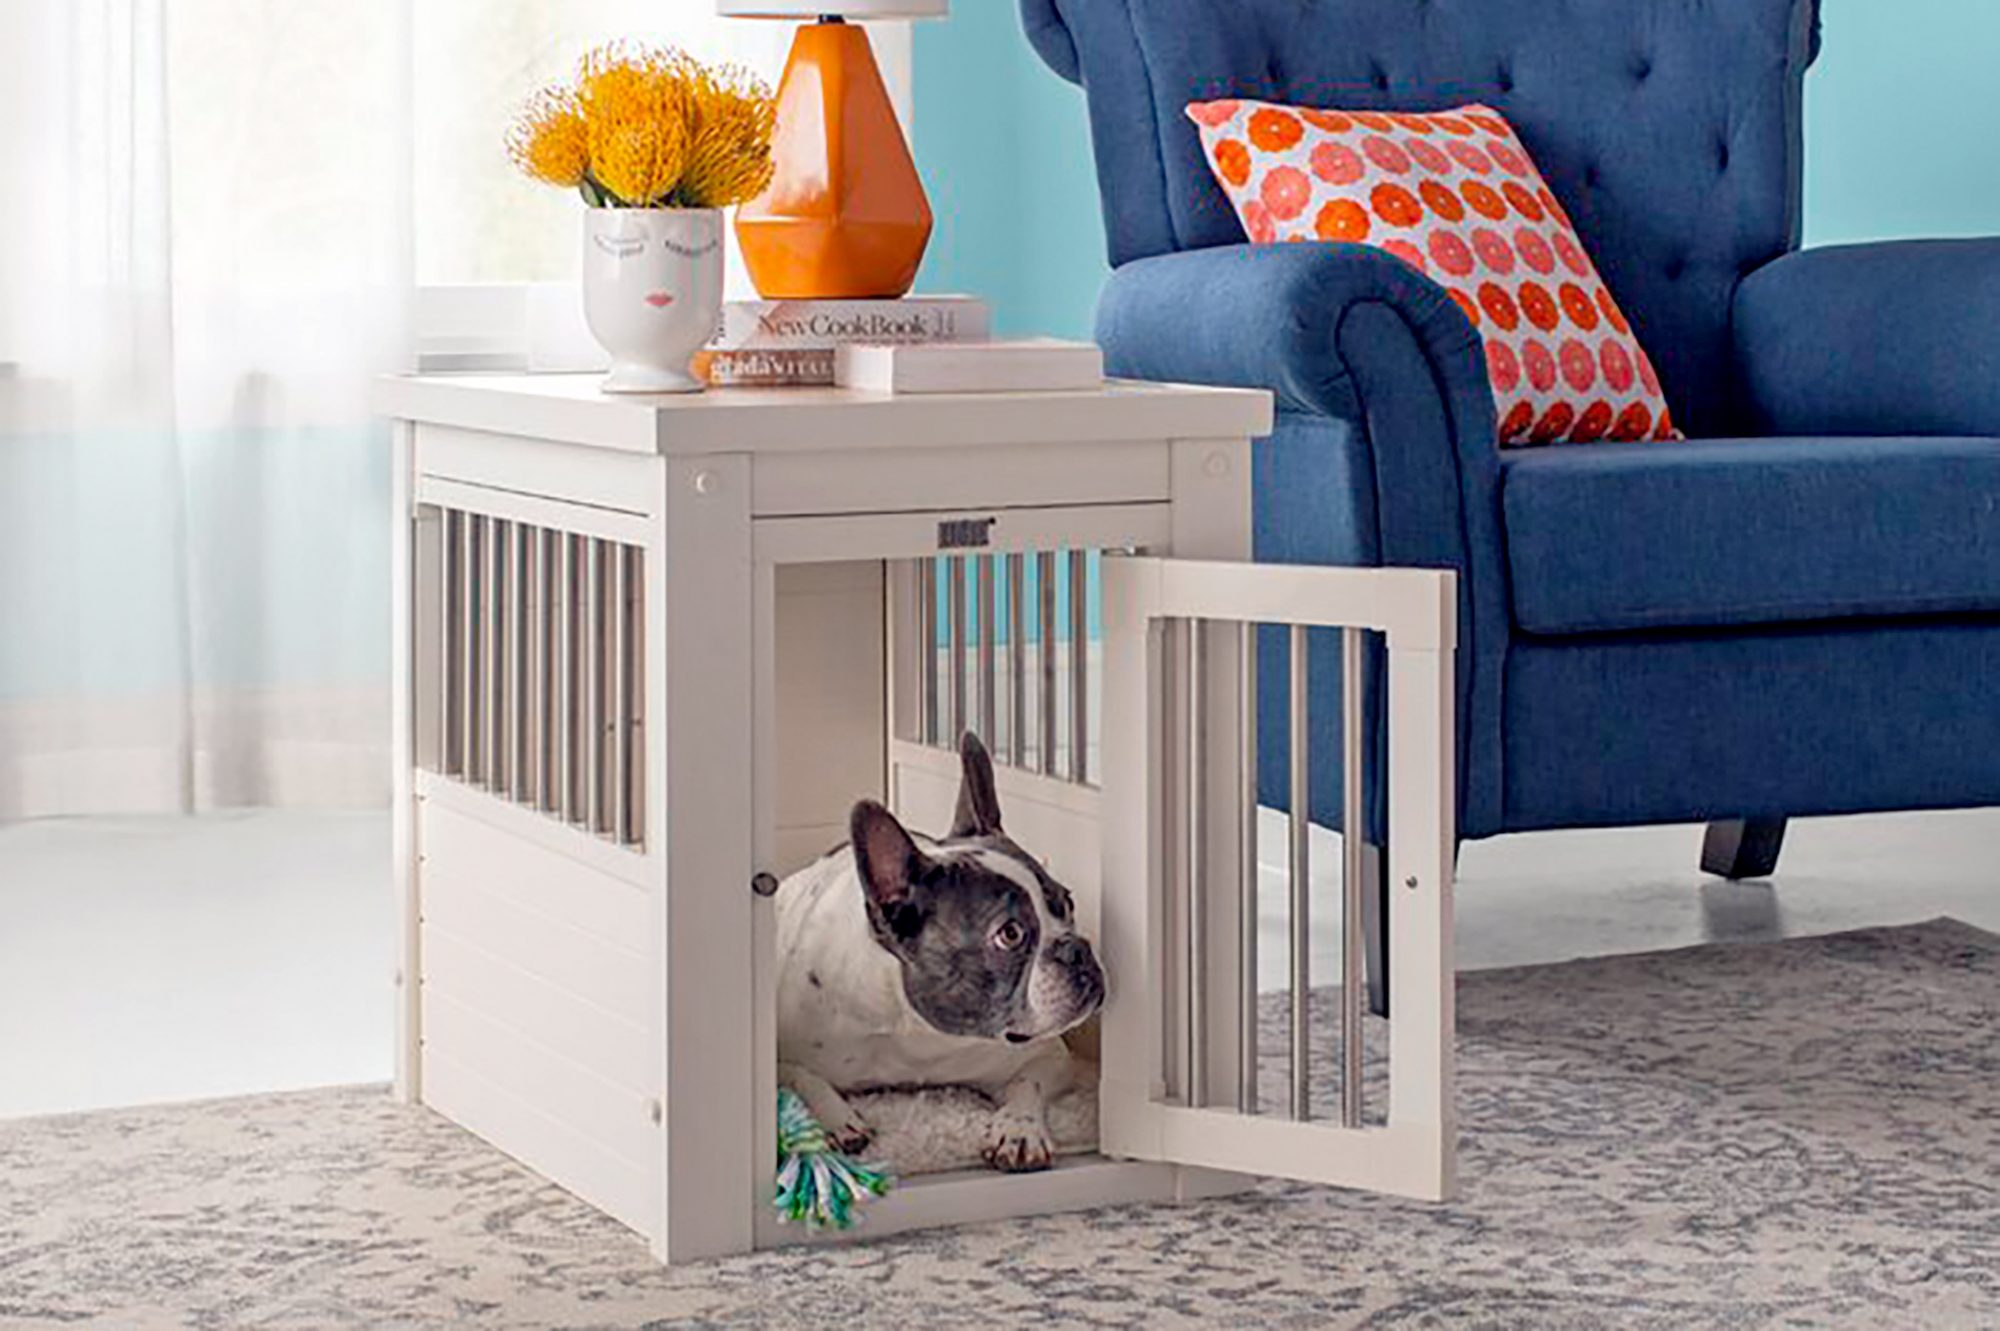 dog in a home decor crate